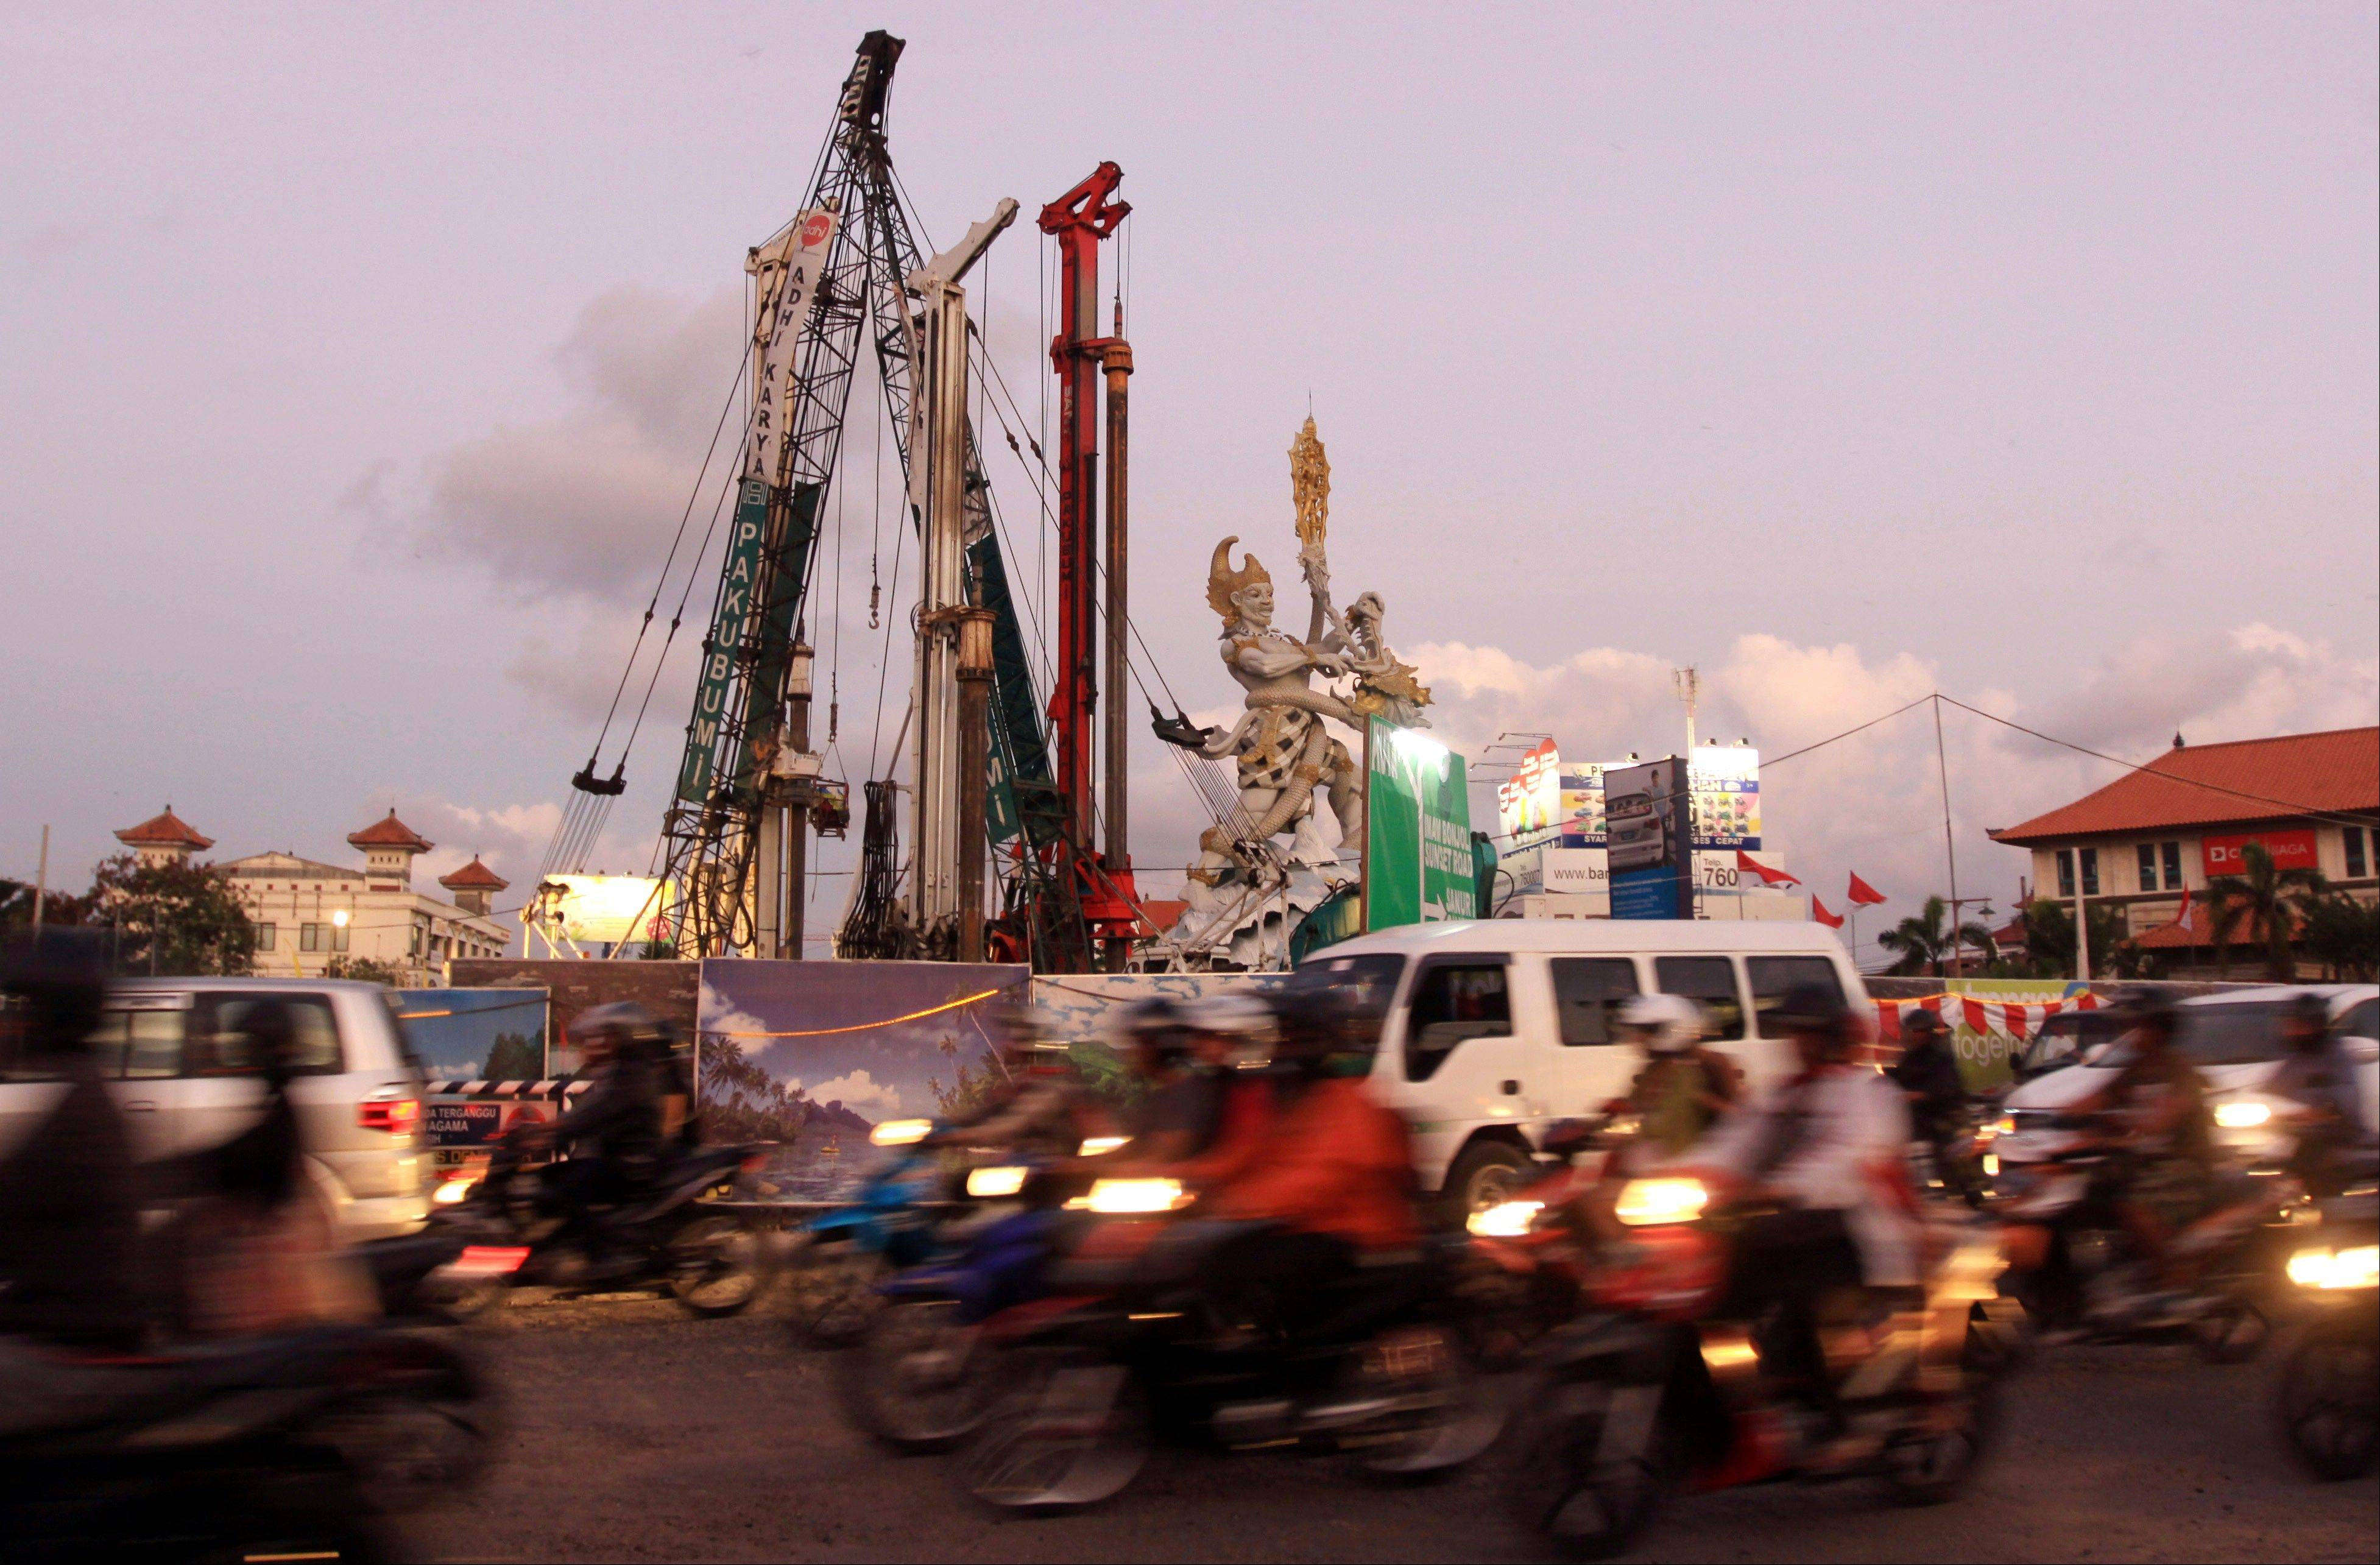 Cranes work next to a traditional Balinese statue called Dewa Ruci at the site of road construction in Kuta Bali.